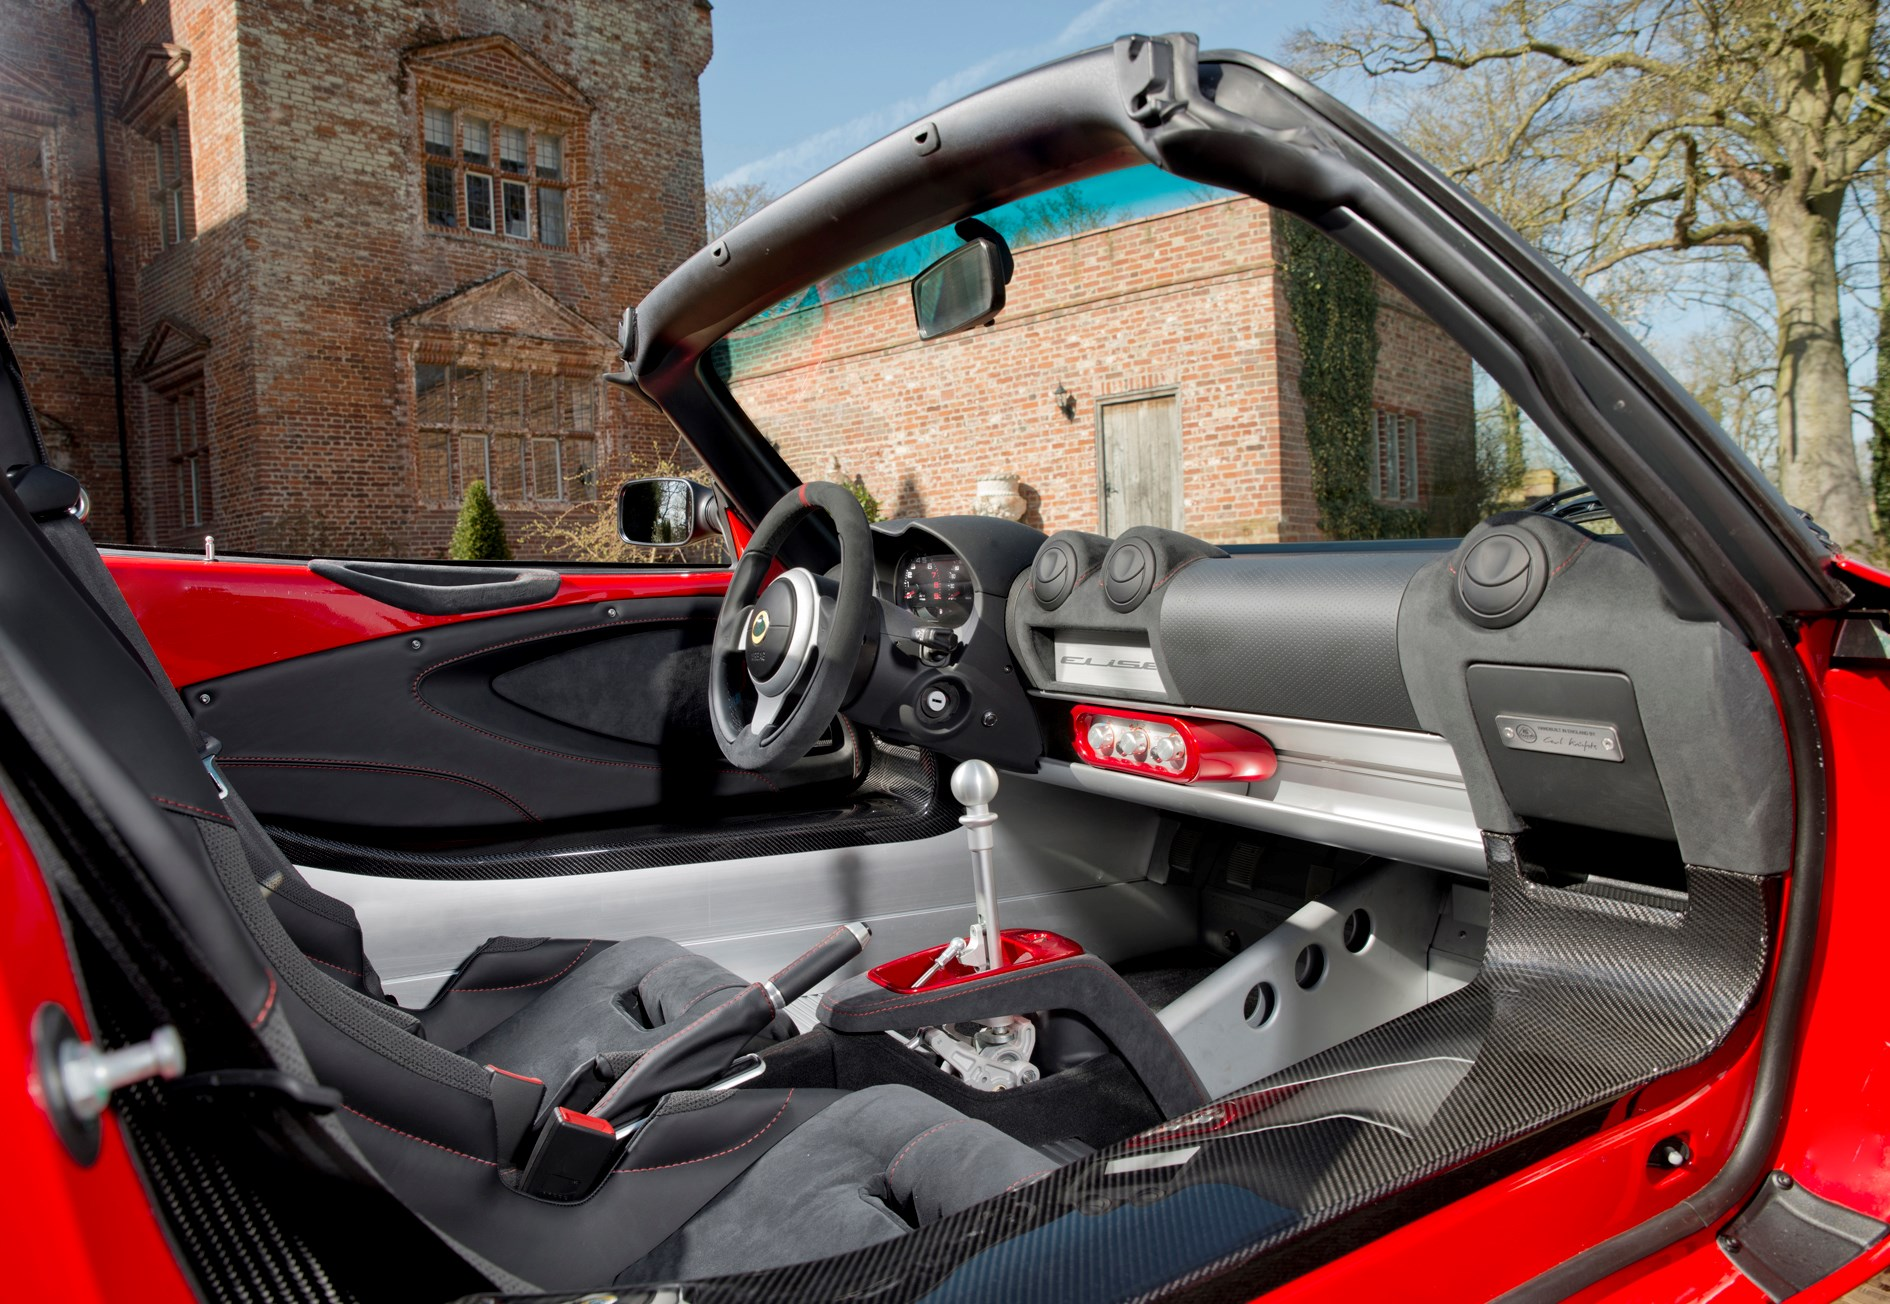 The Latest Lotus Elise Weighs 1759 lbs., Dry